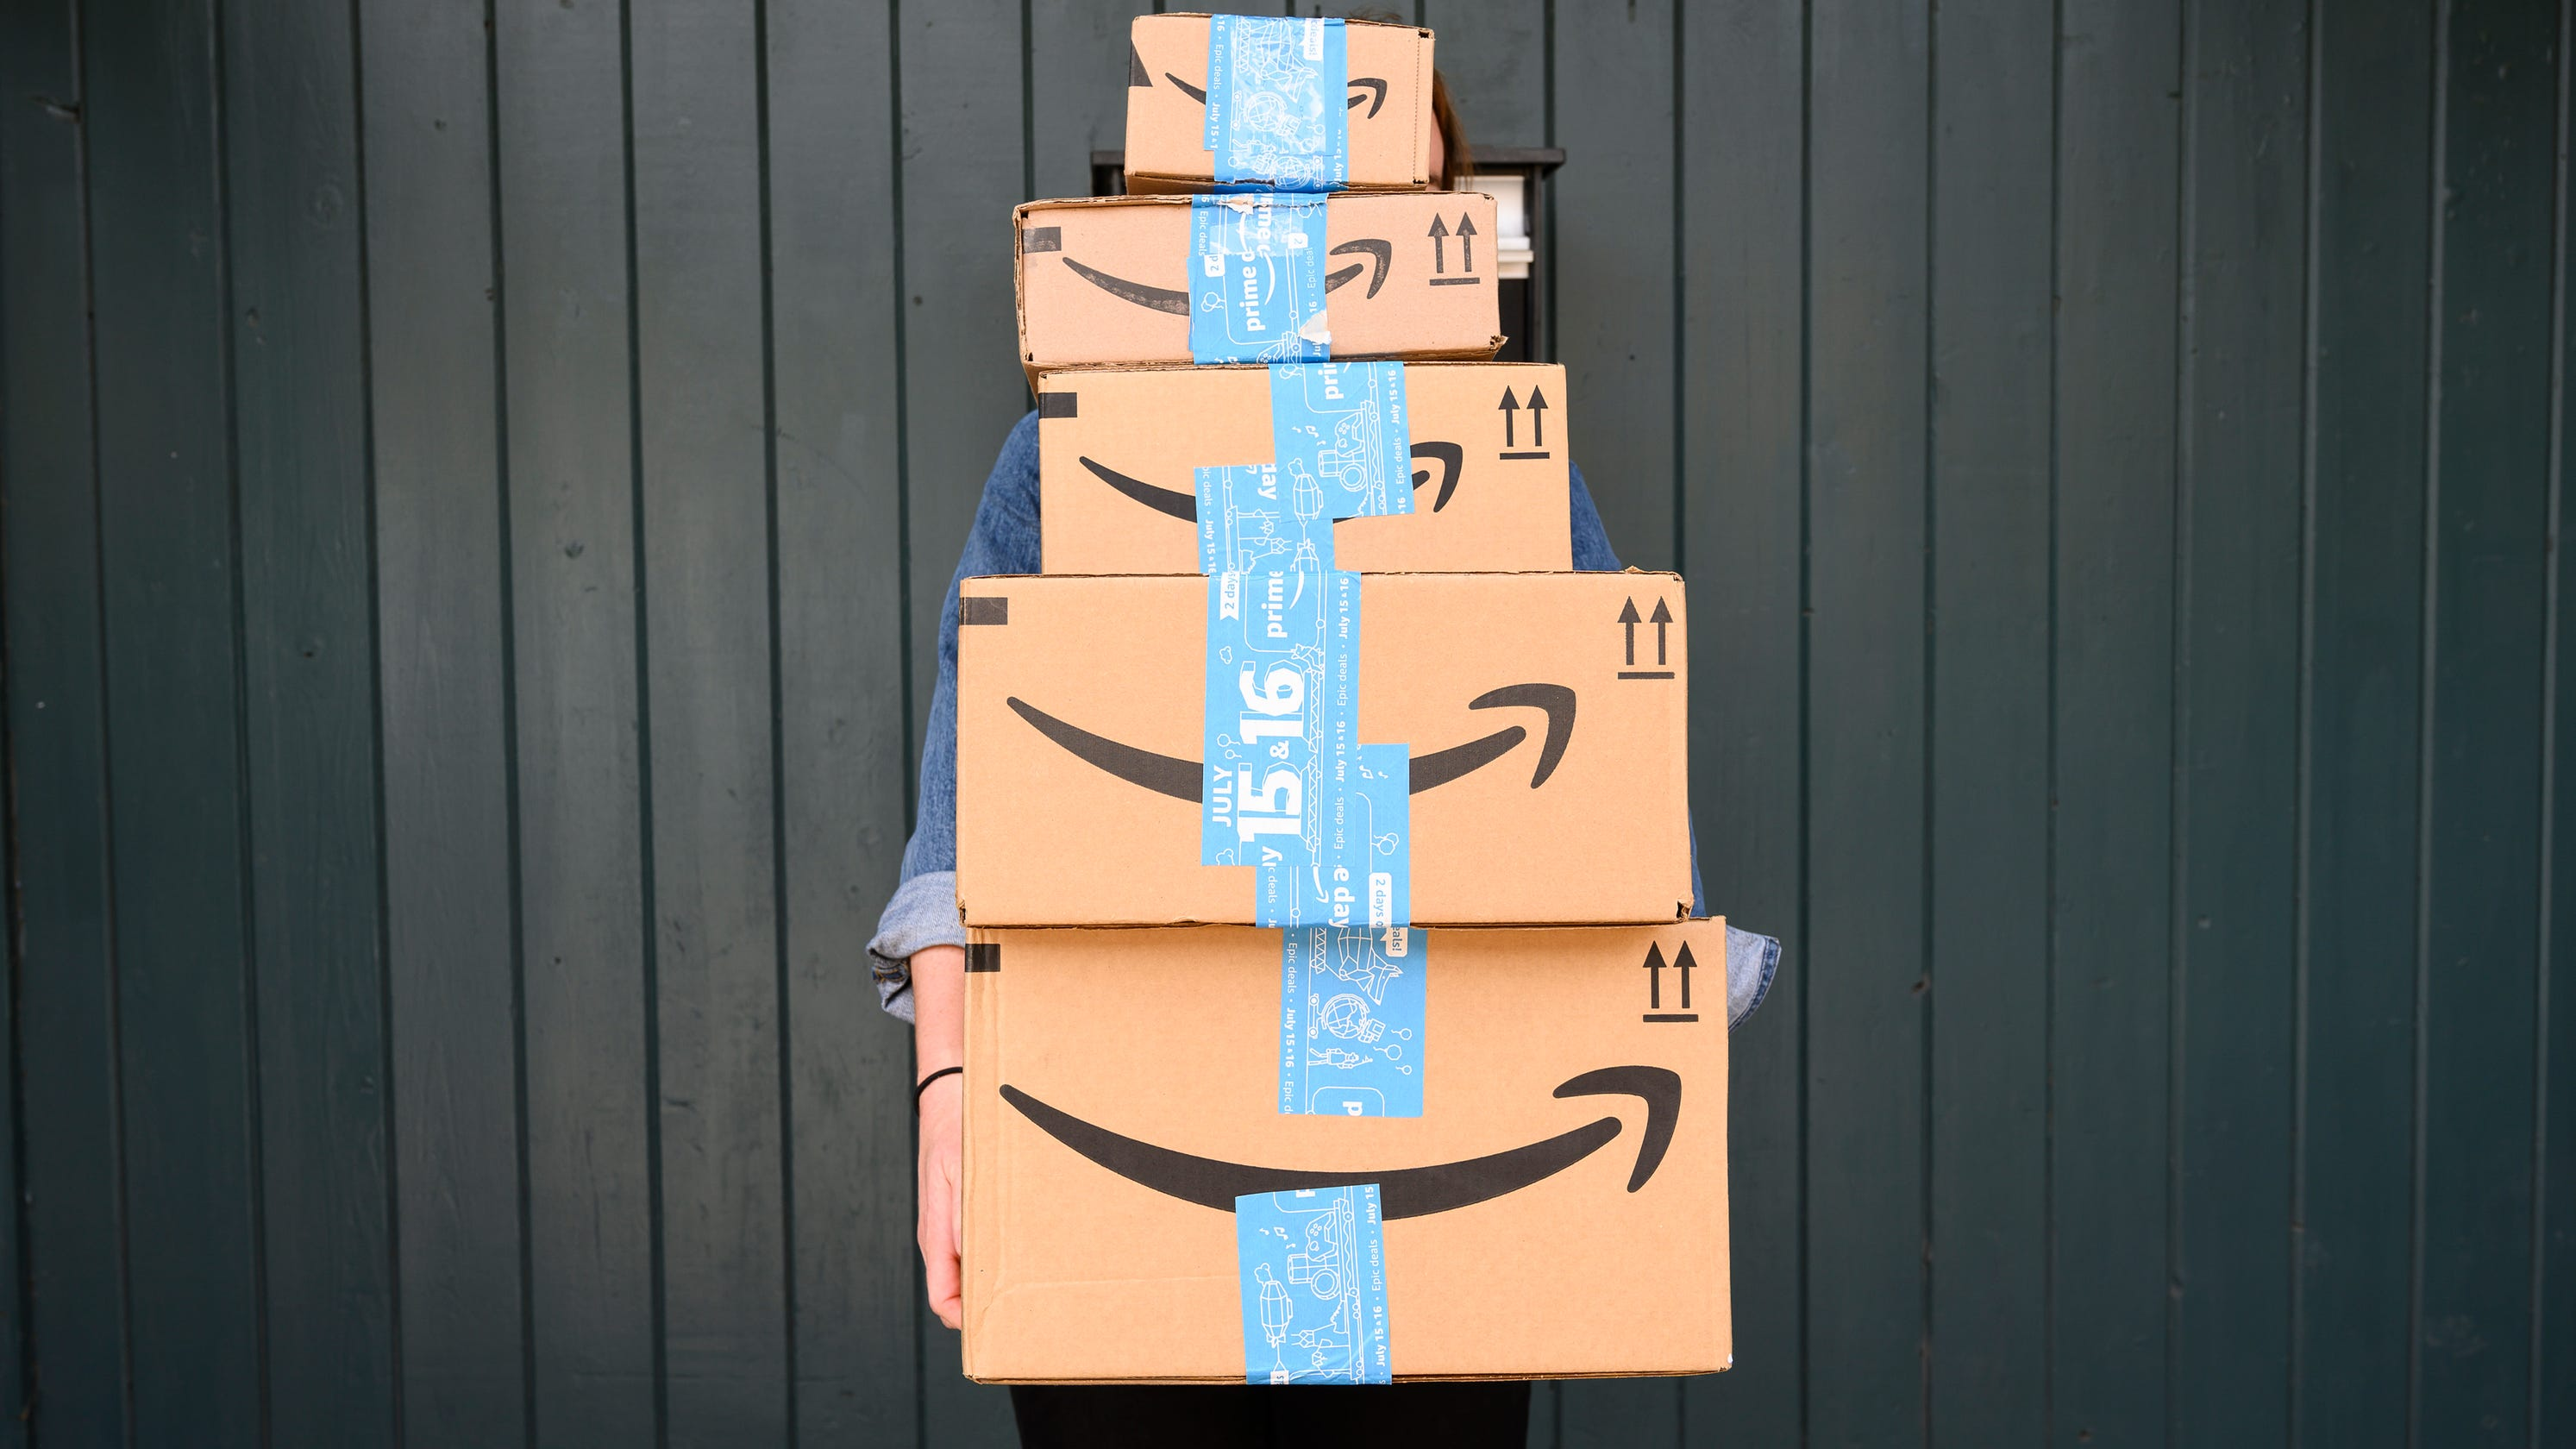 Amazon Black Friday: Amazon just released their Black Friday